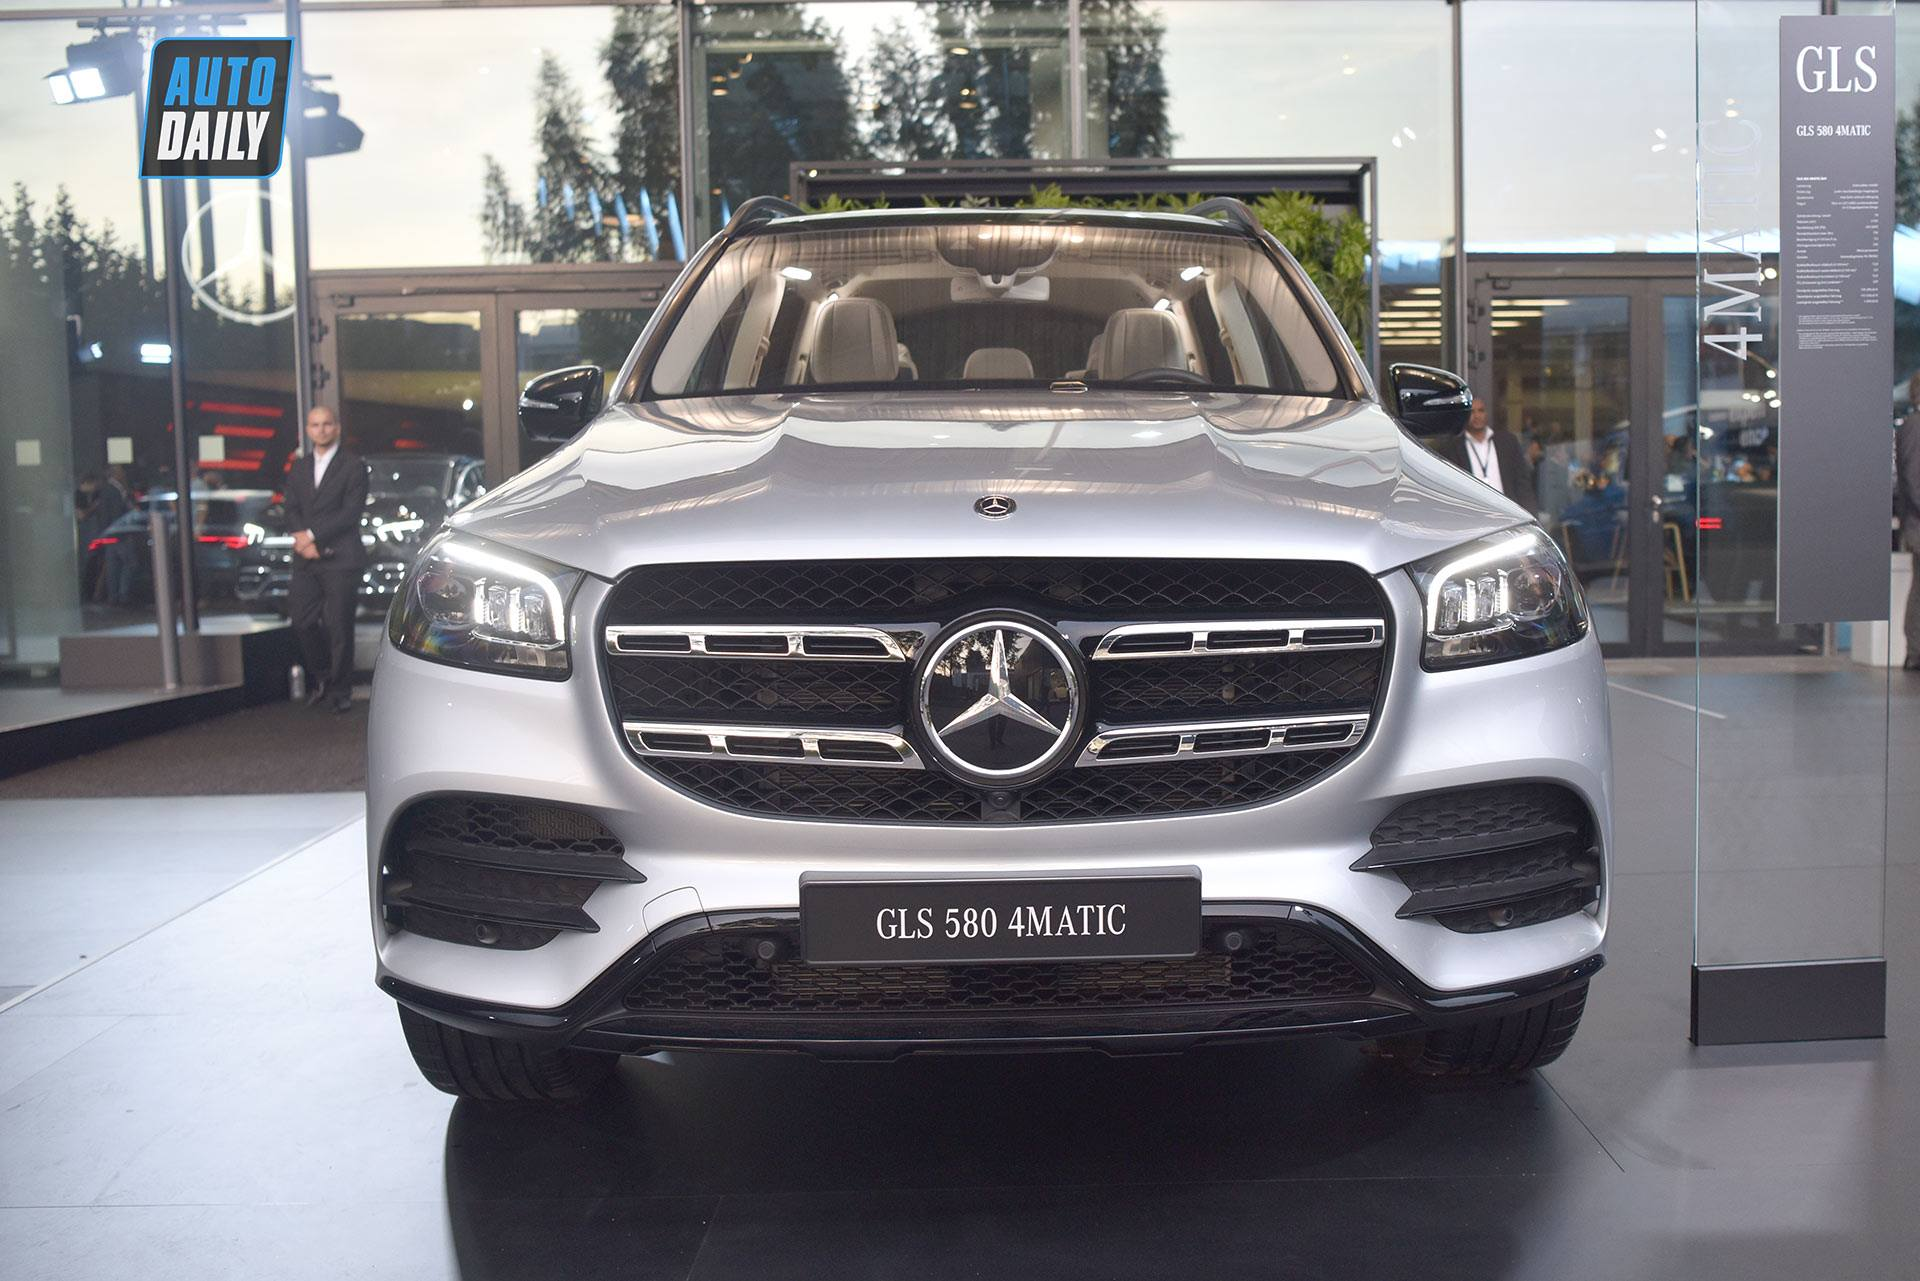 gls-580-4matic2.jpg